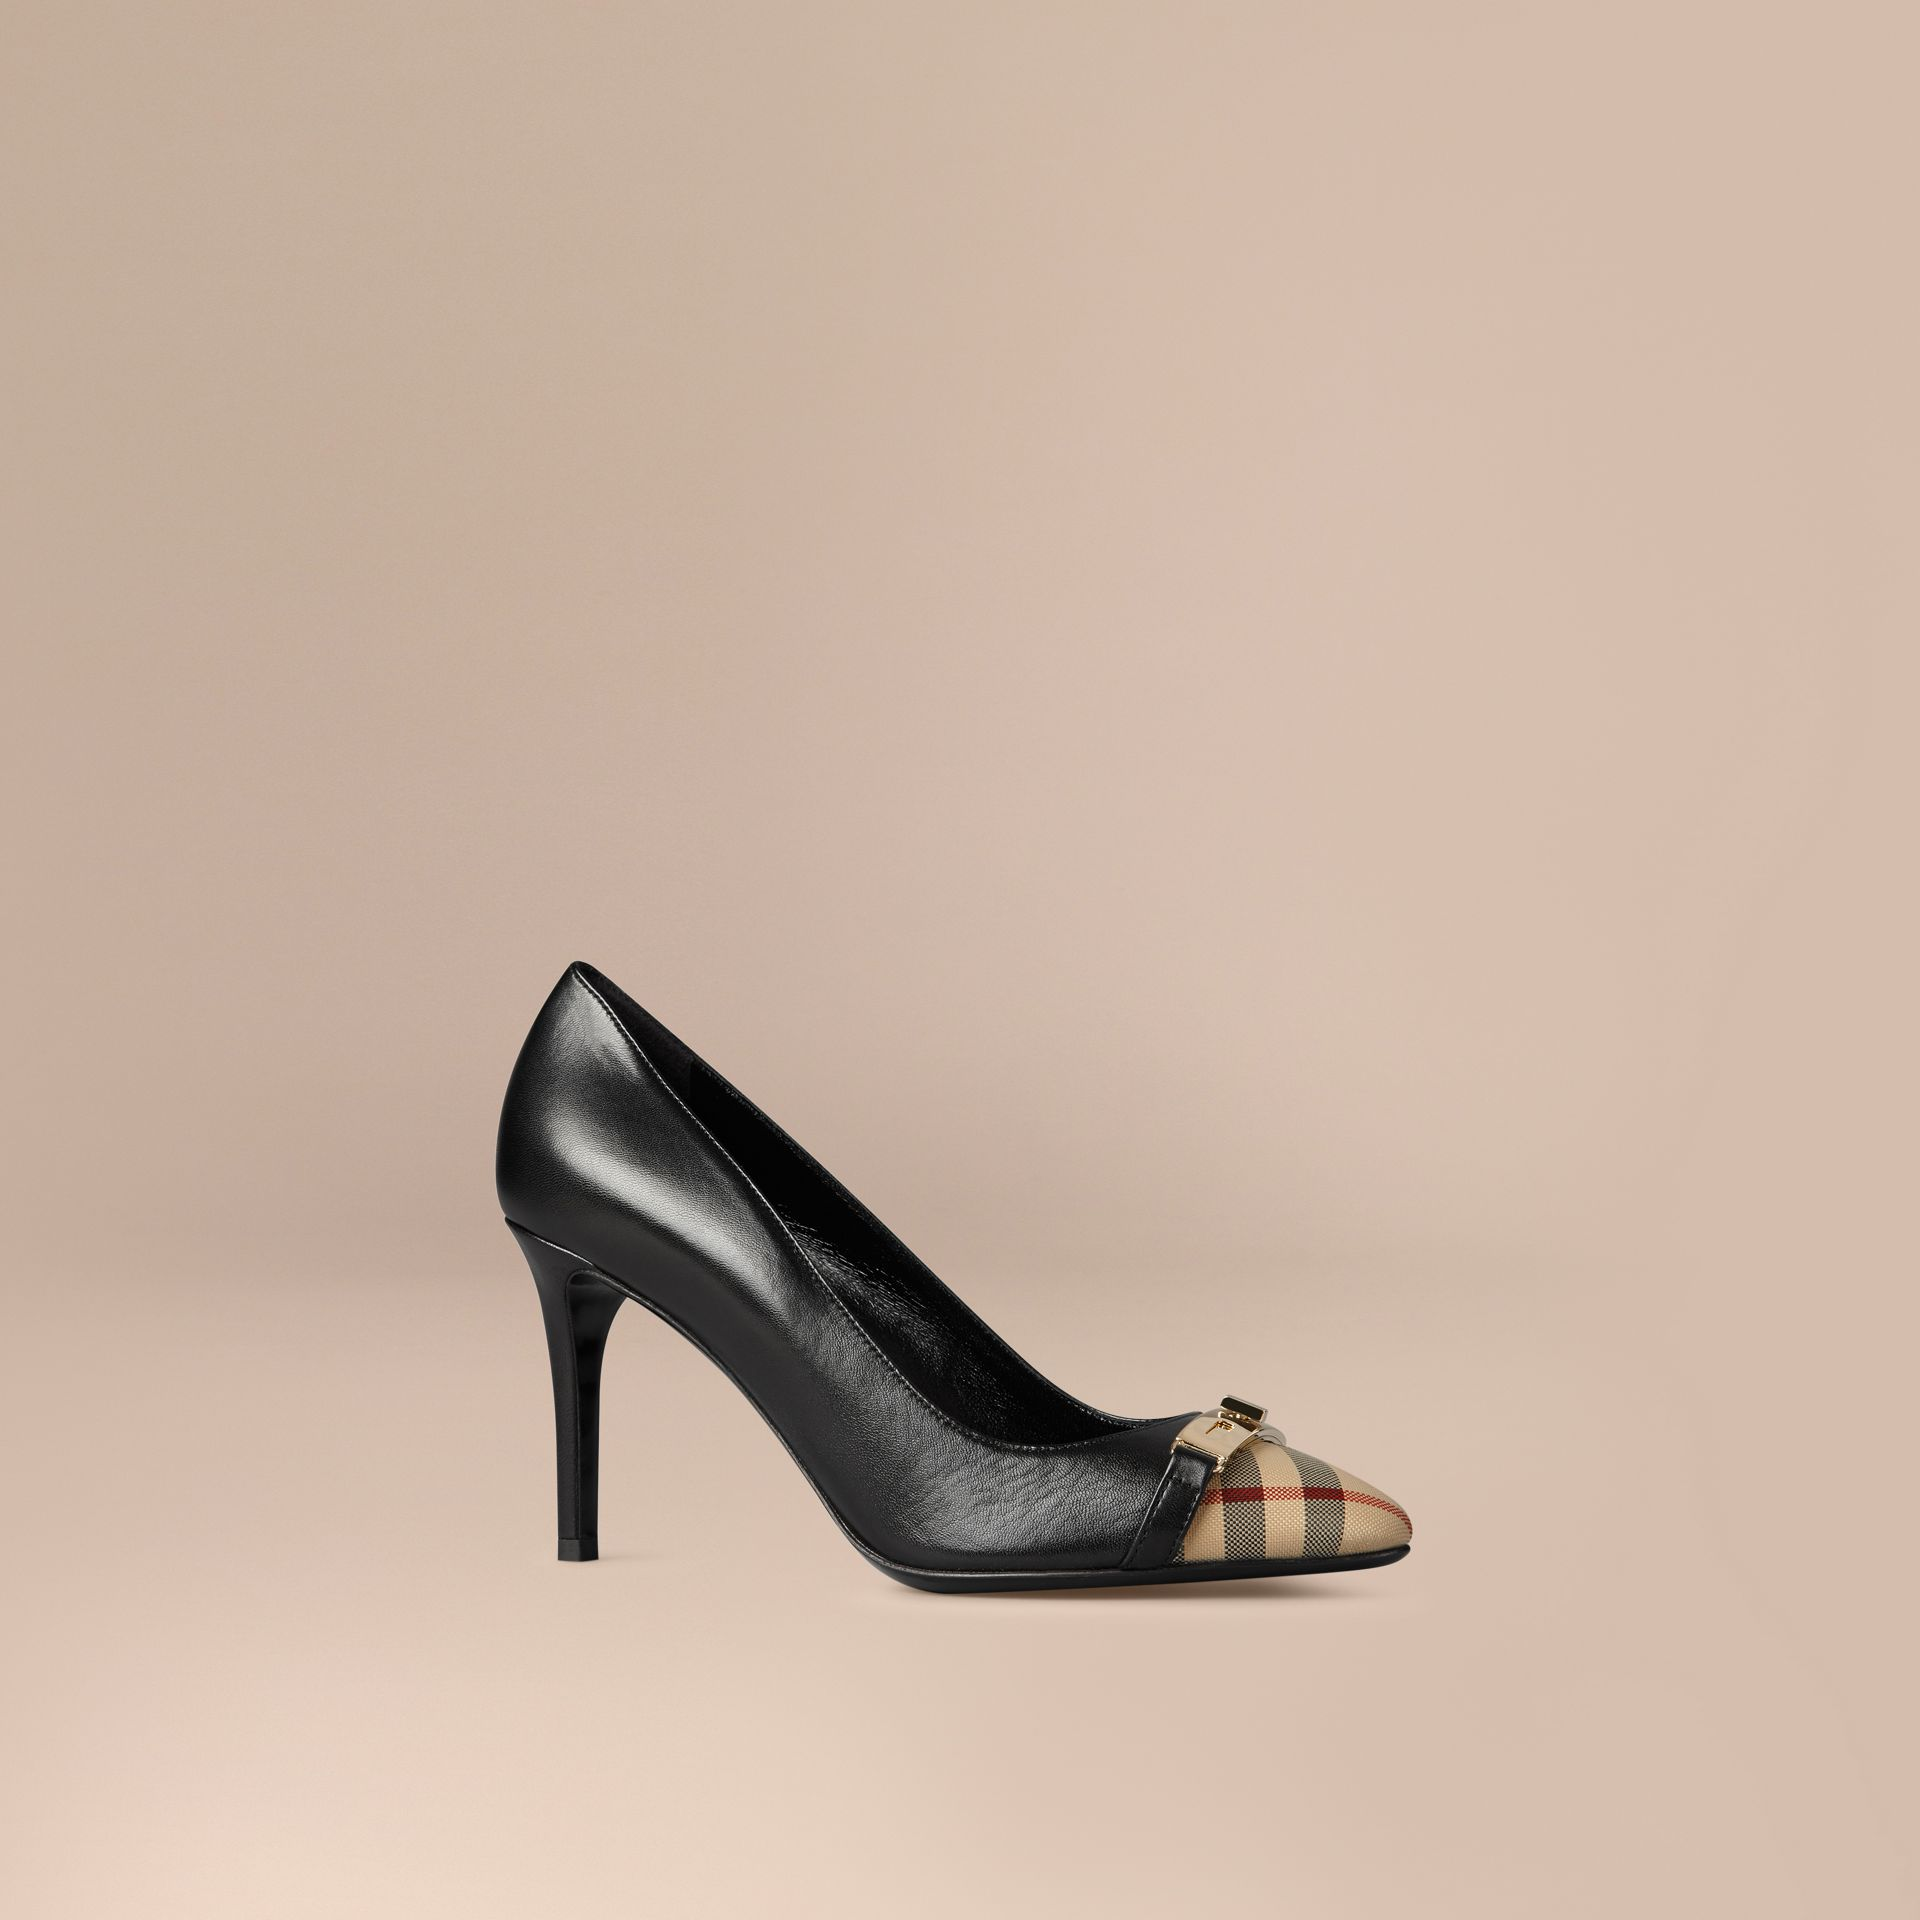 Black Horseferry Check Leather Pumps Black - gallery image 1